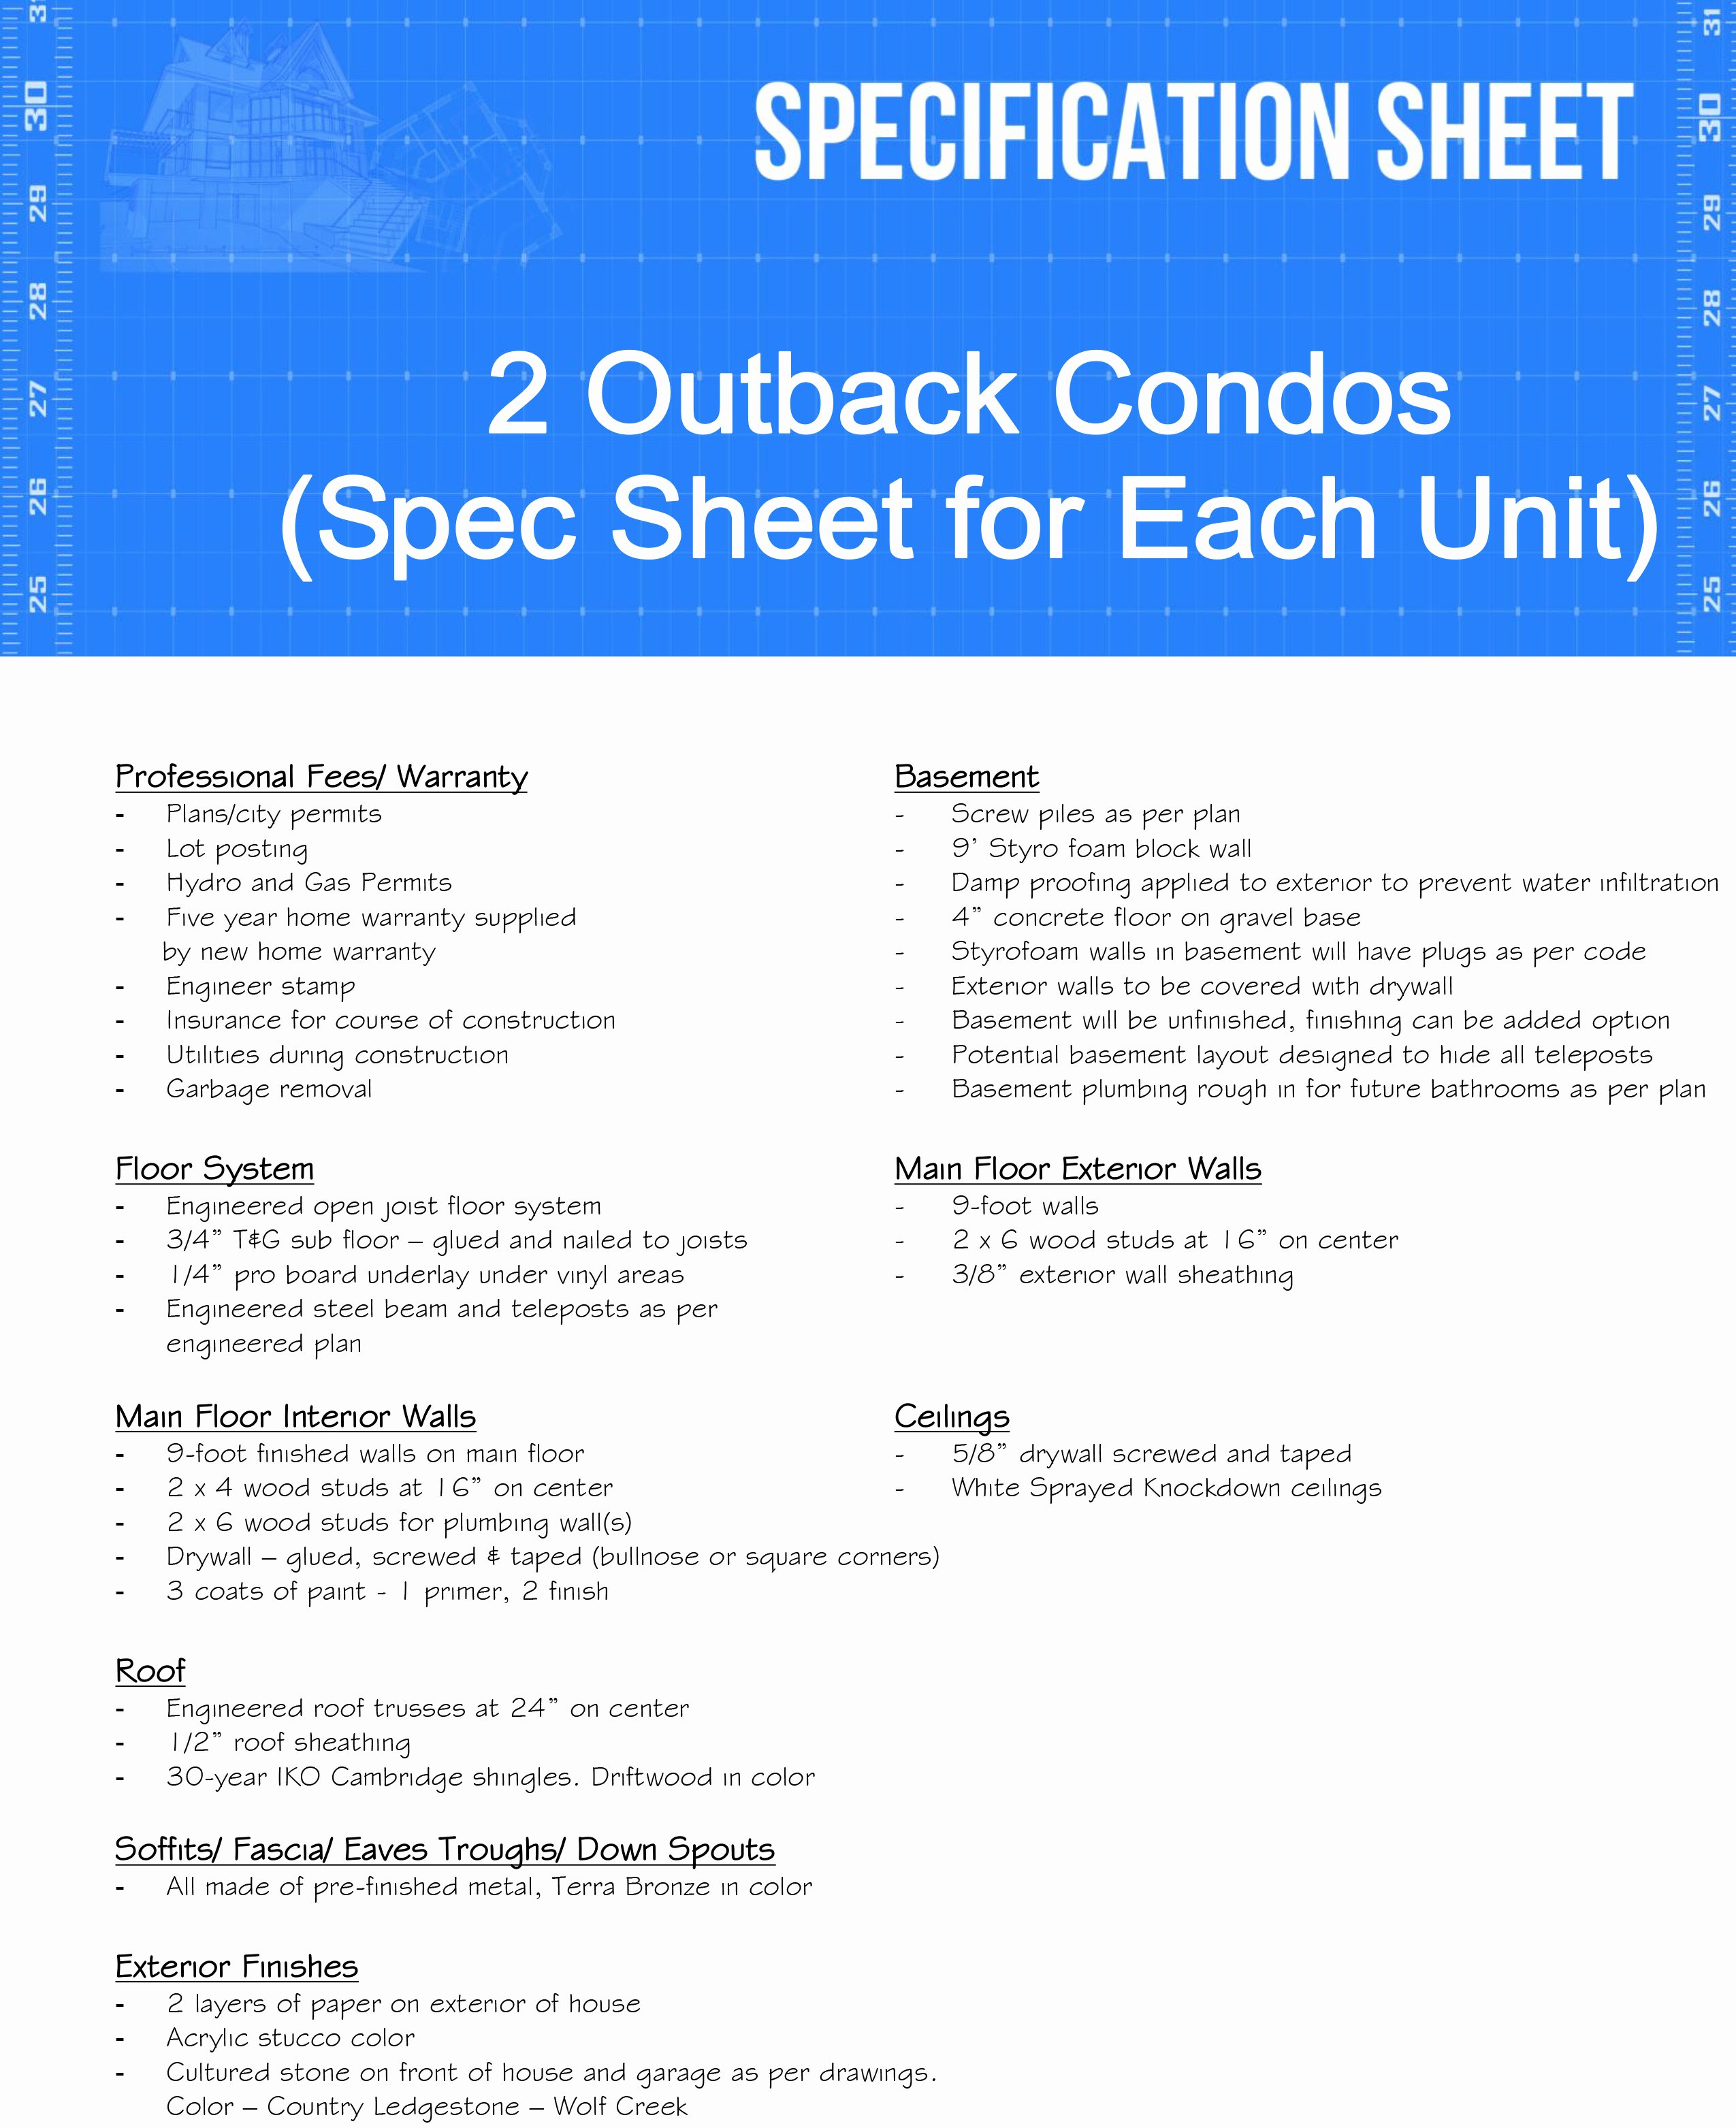 Construction Spec Sheet Template Beautiful 3 Questions to ask Residential Construction Spec Sheet